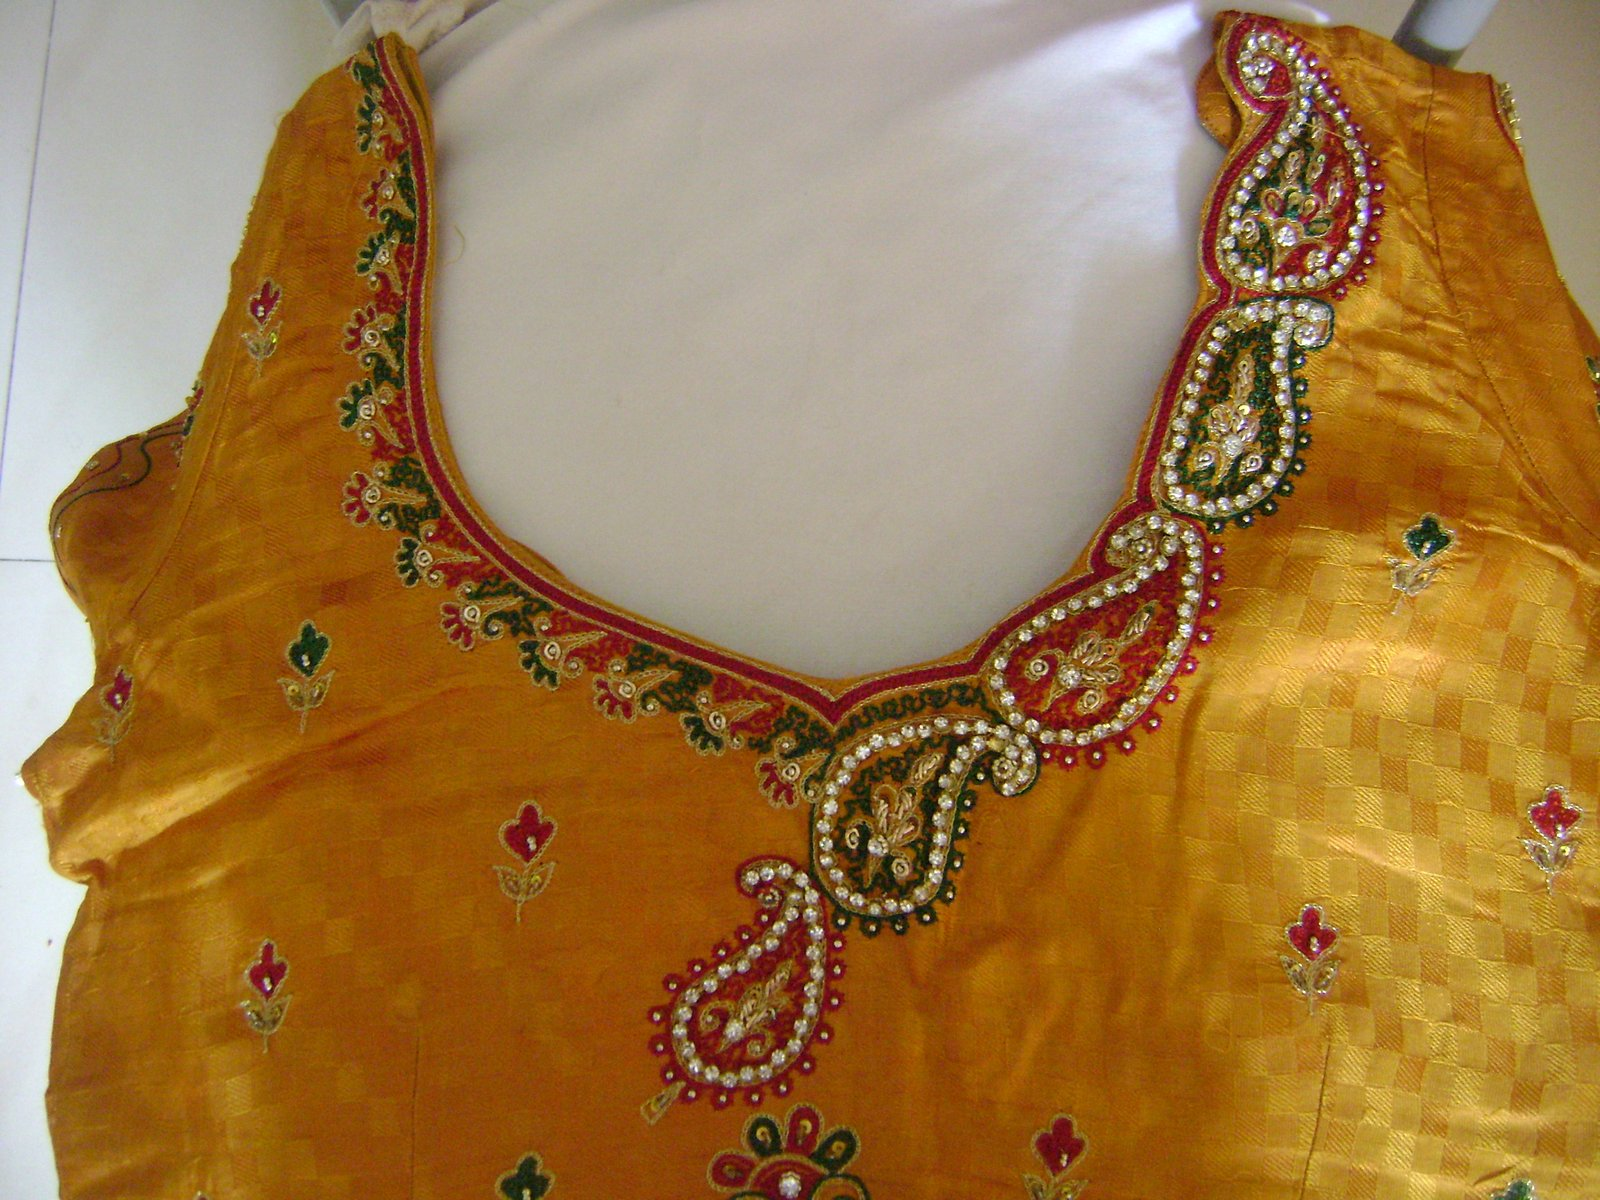 Manithan tamilan indian hand embroidery blouse with stone